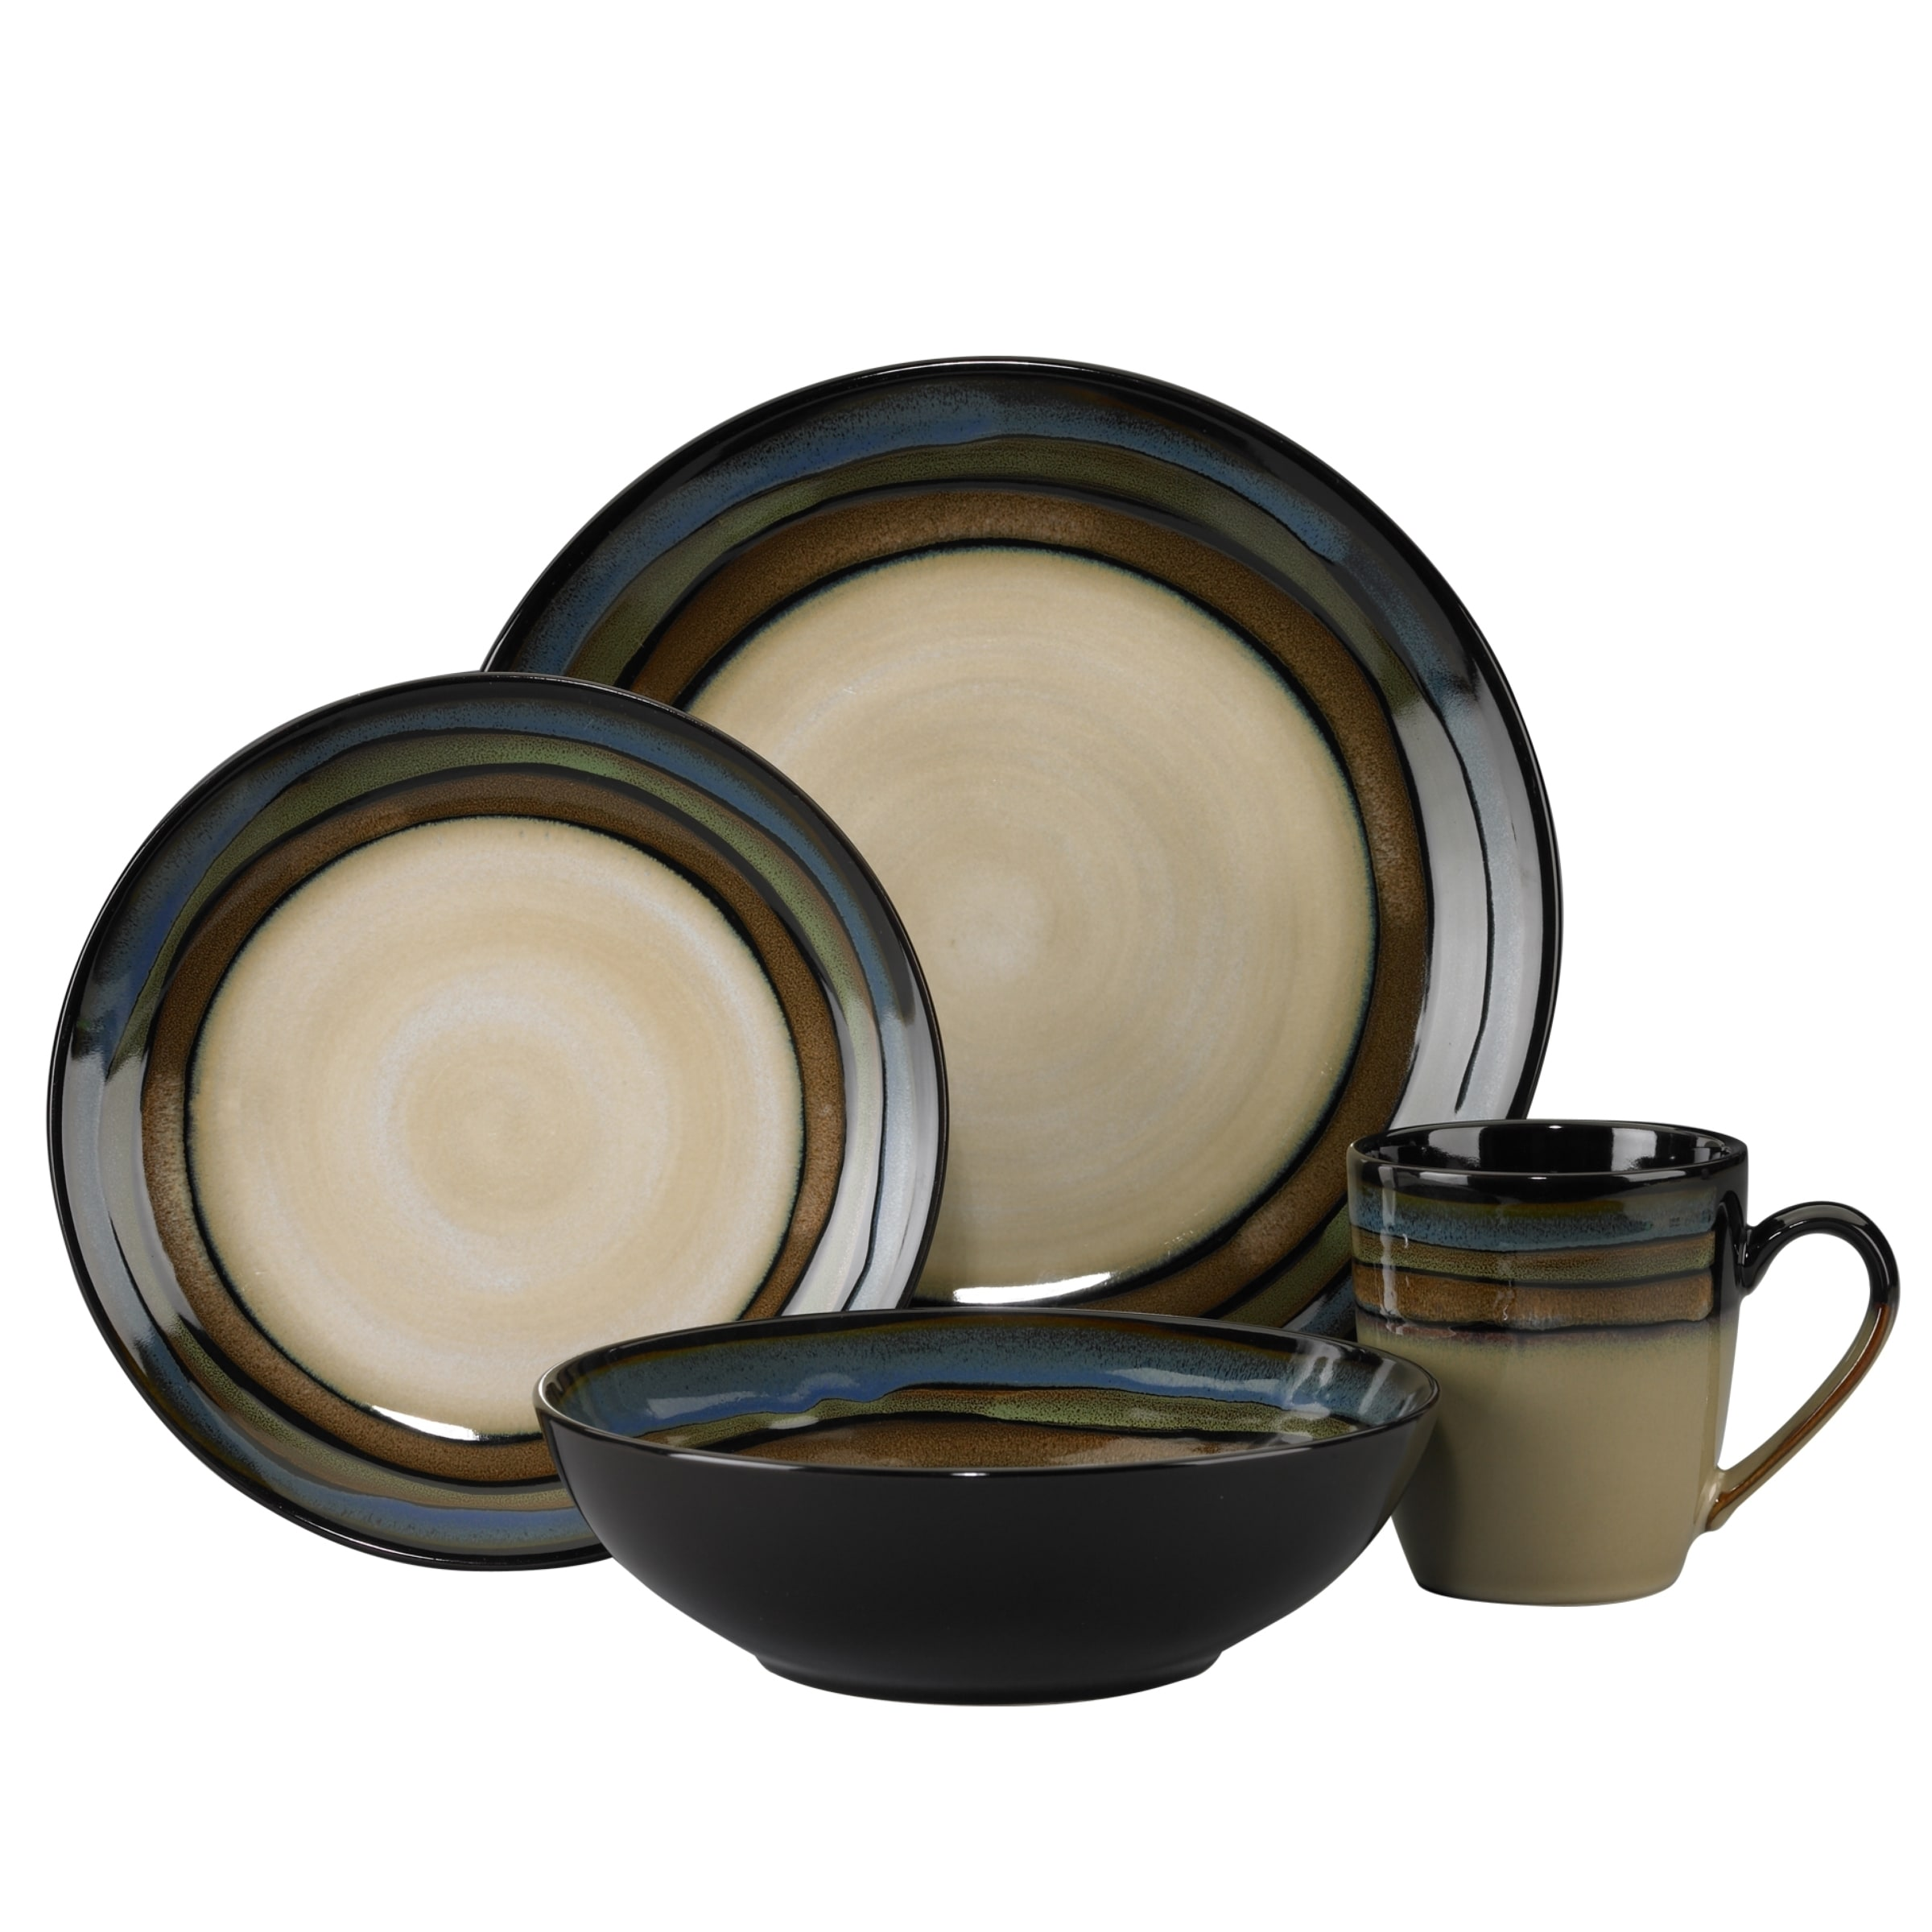 Pfaltzgraff Galaxy 16-piece Dinnerware Set - Free Shipping Today - Overstock - 17366163  sc 1 st  Overstock & Pfaltzgraff Galaxy 16-piece Dinnerware Set - Free Shipping Today ...